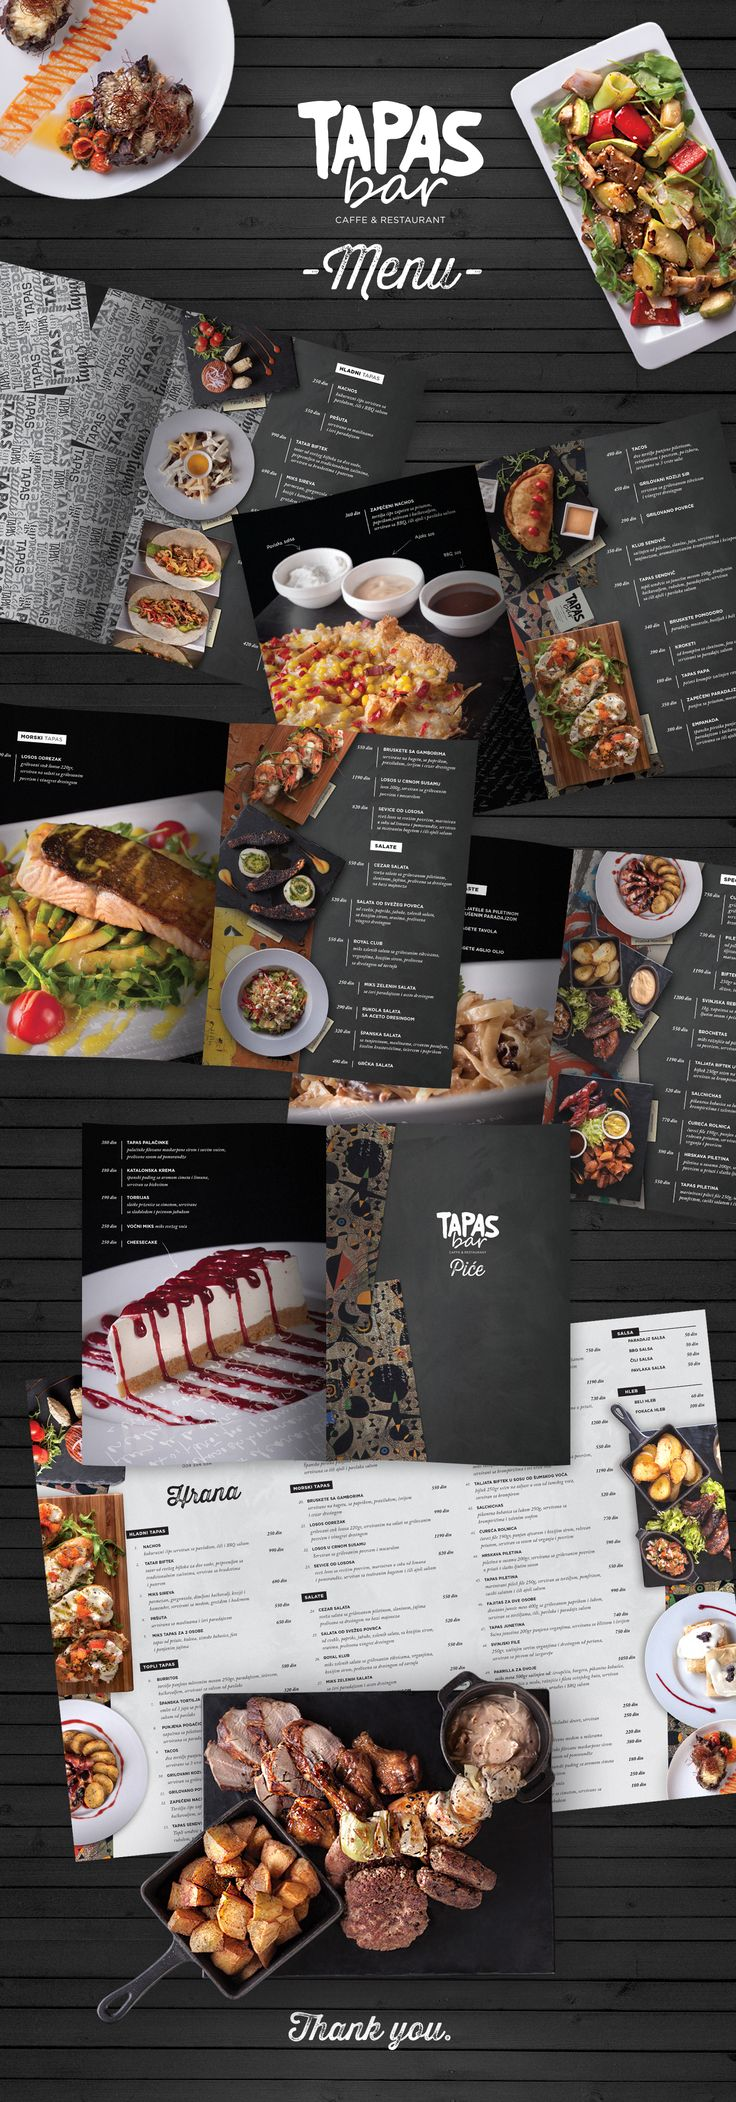 Tapas Bar - Menu by Borko Neric on Behance